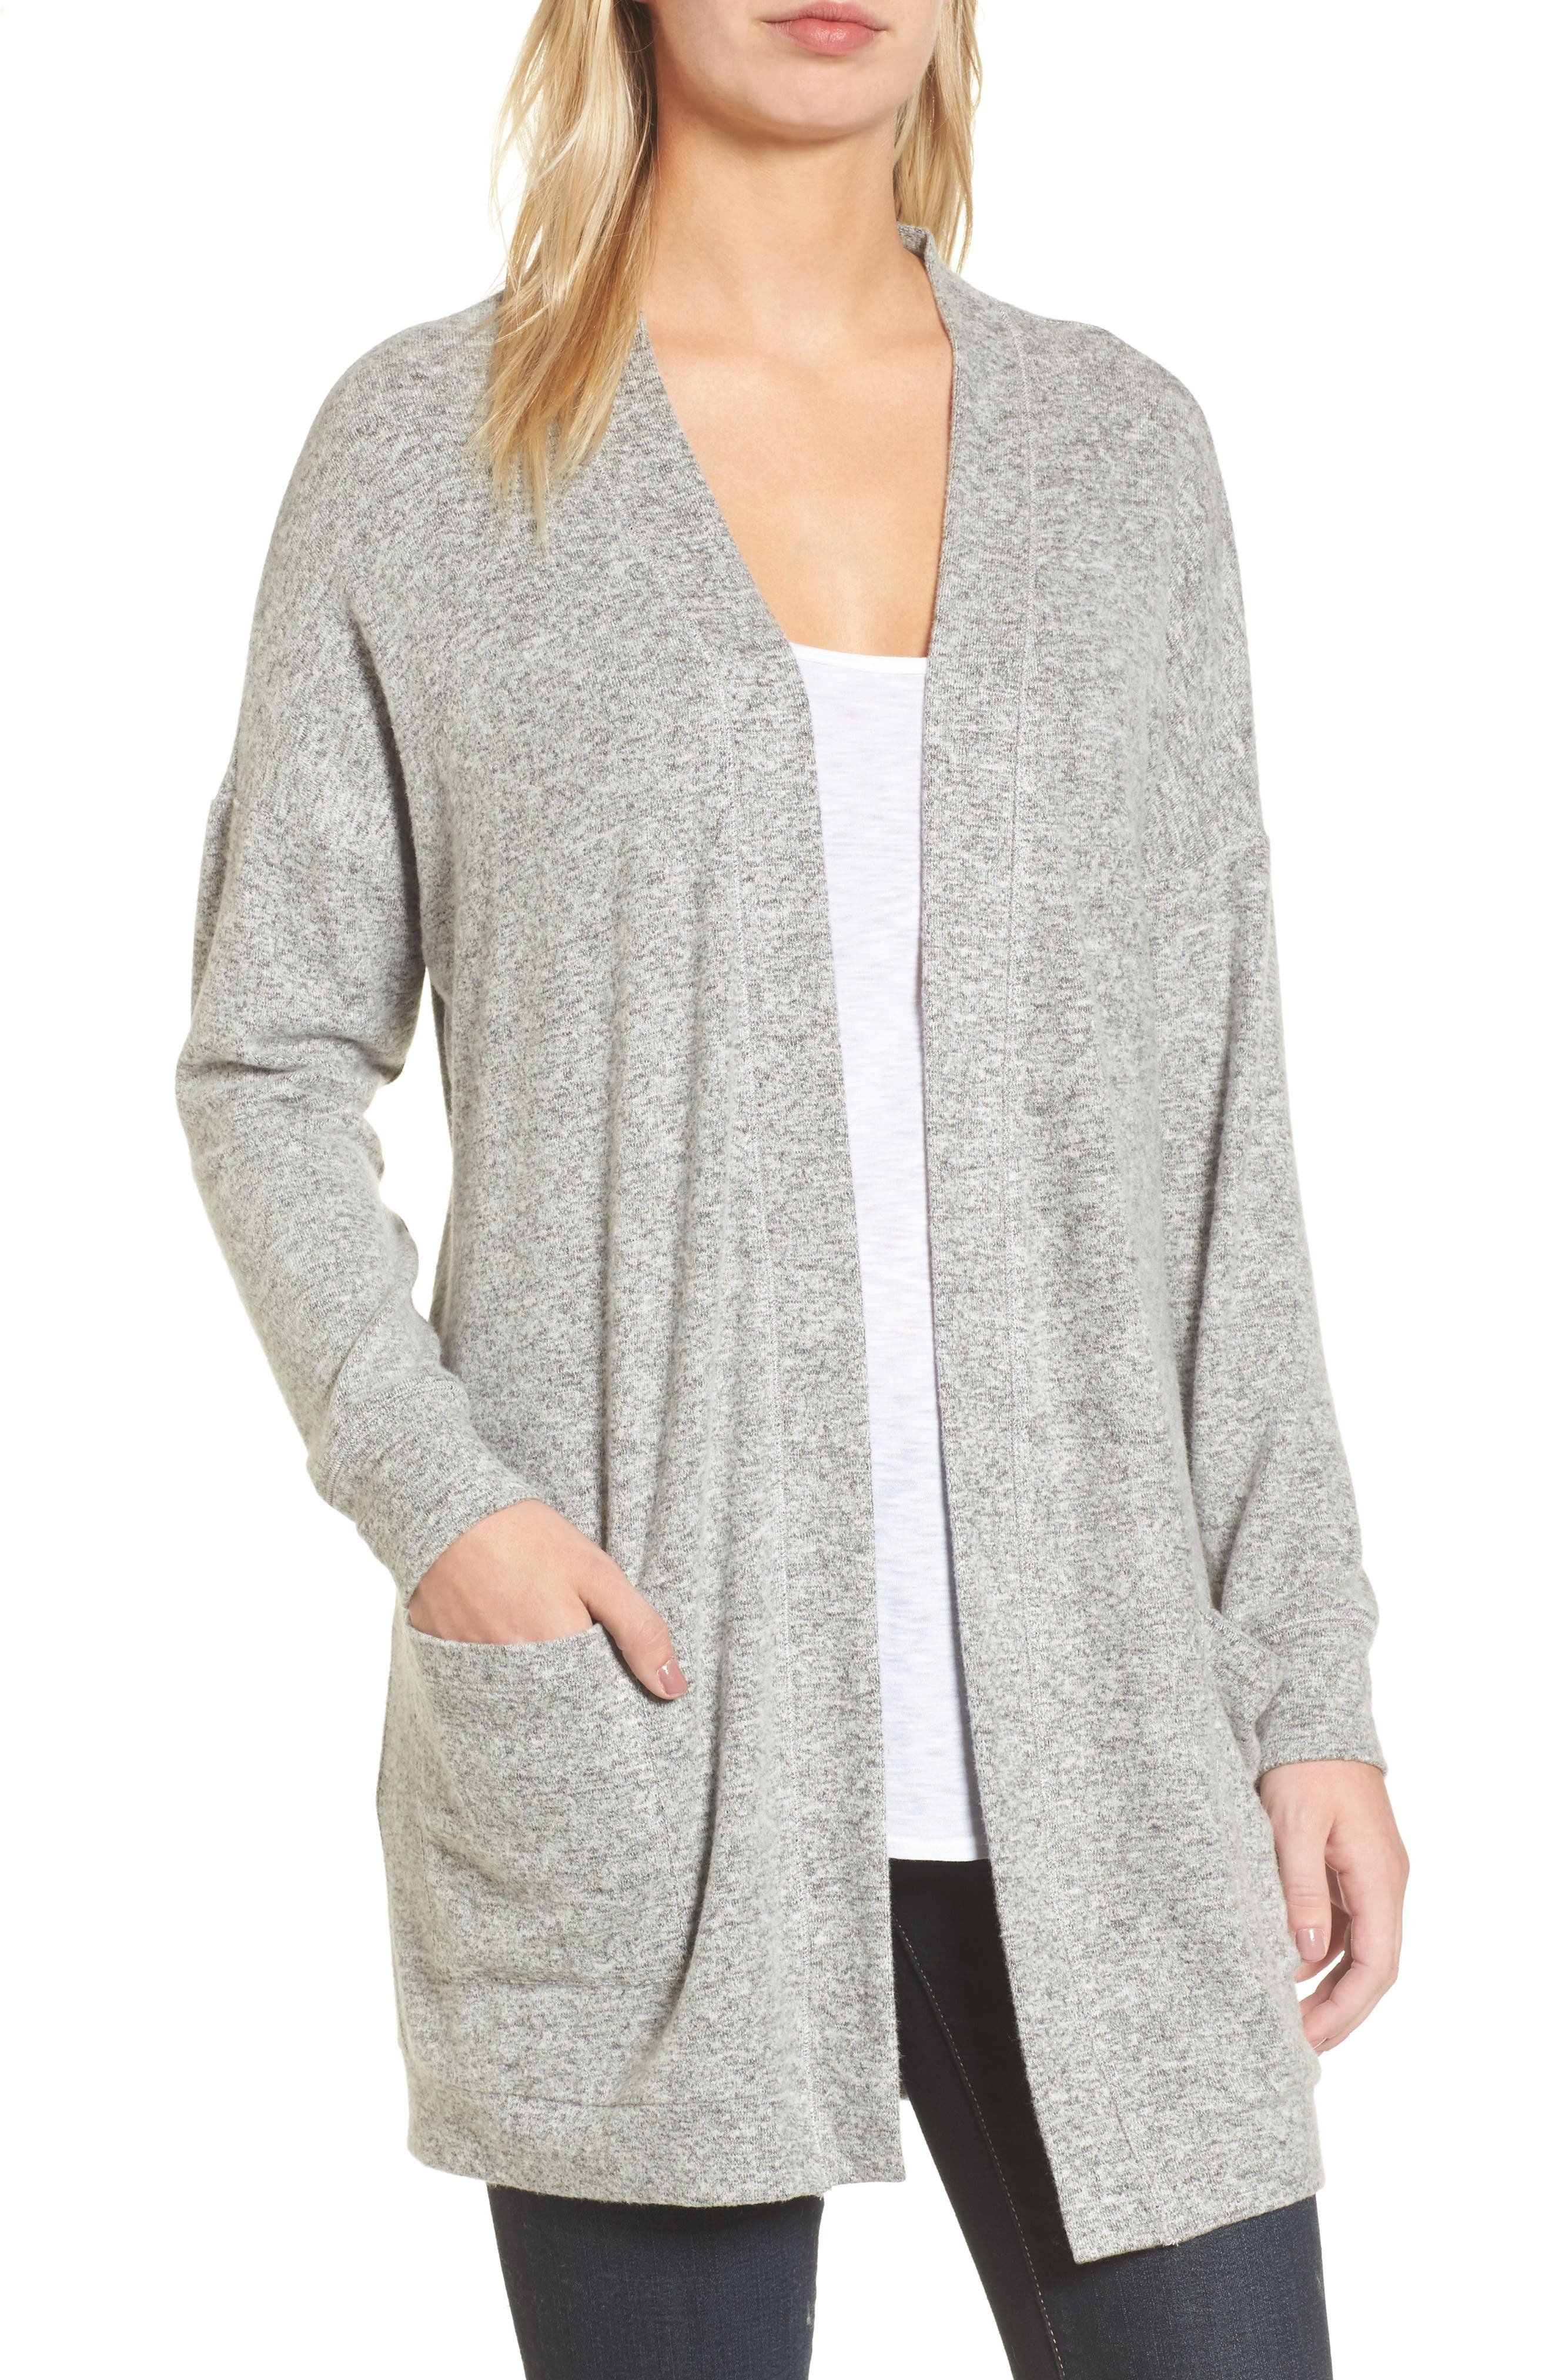 Gibson Rib Knit Cardigan (Regular & Petite)